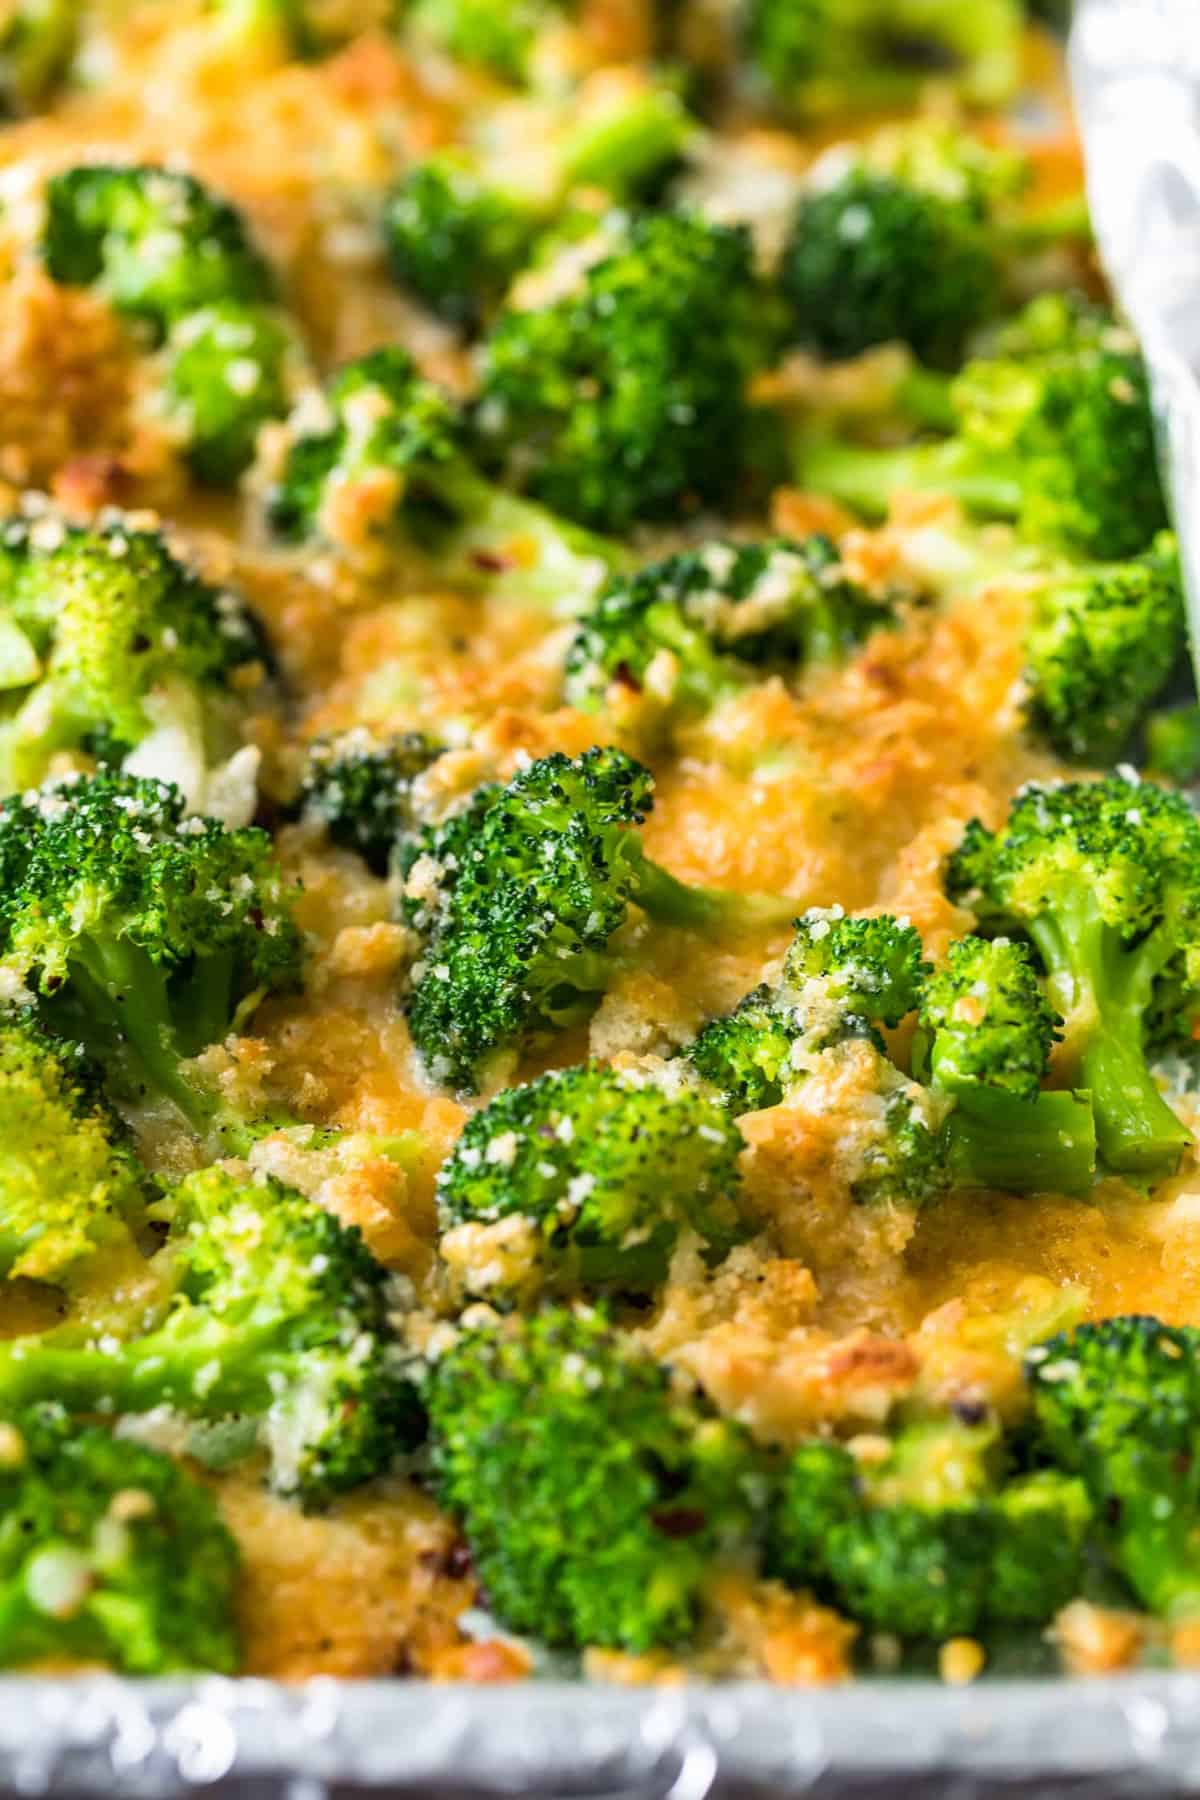 Close up of the cooked broccoli